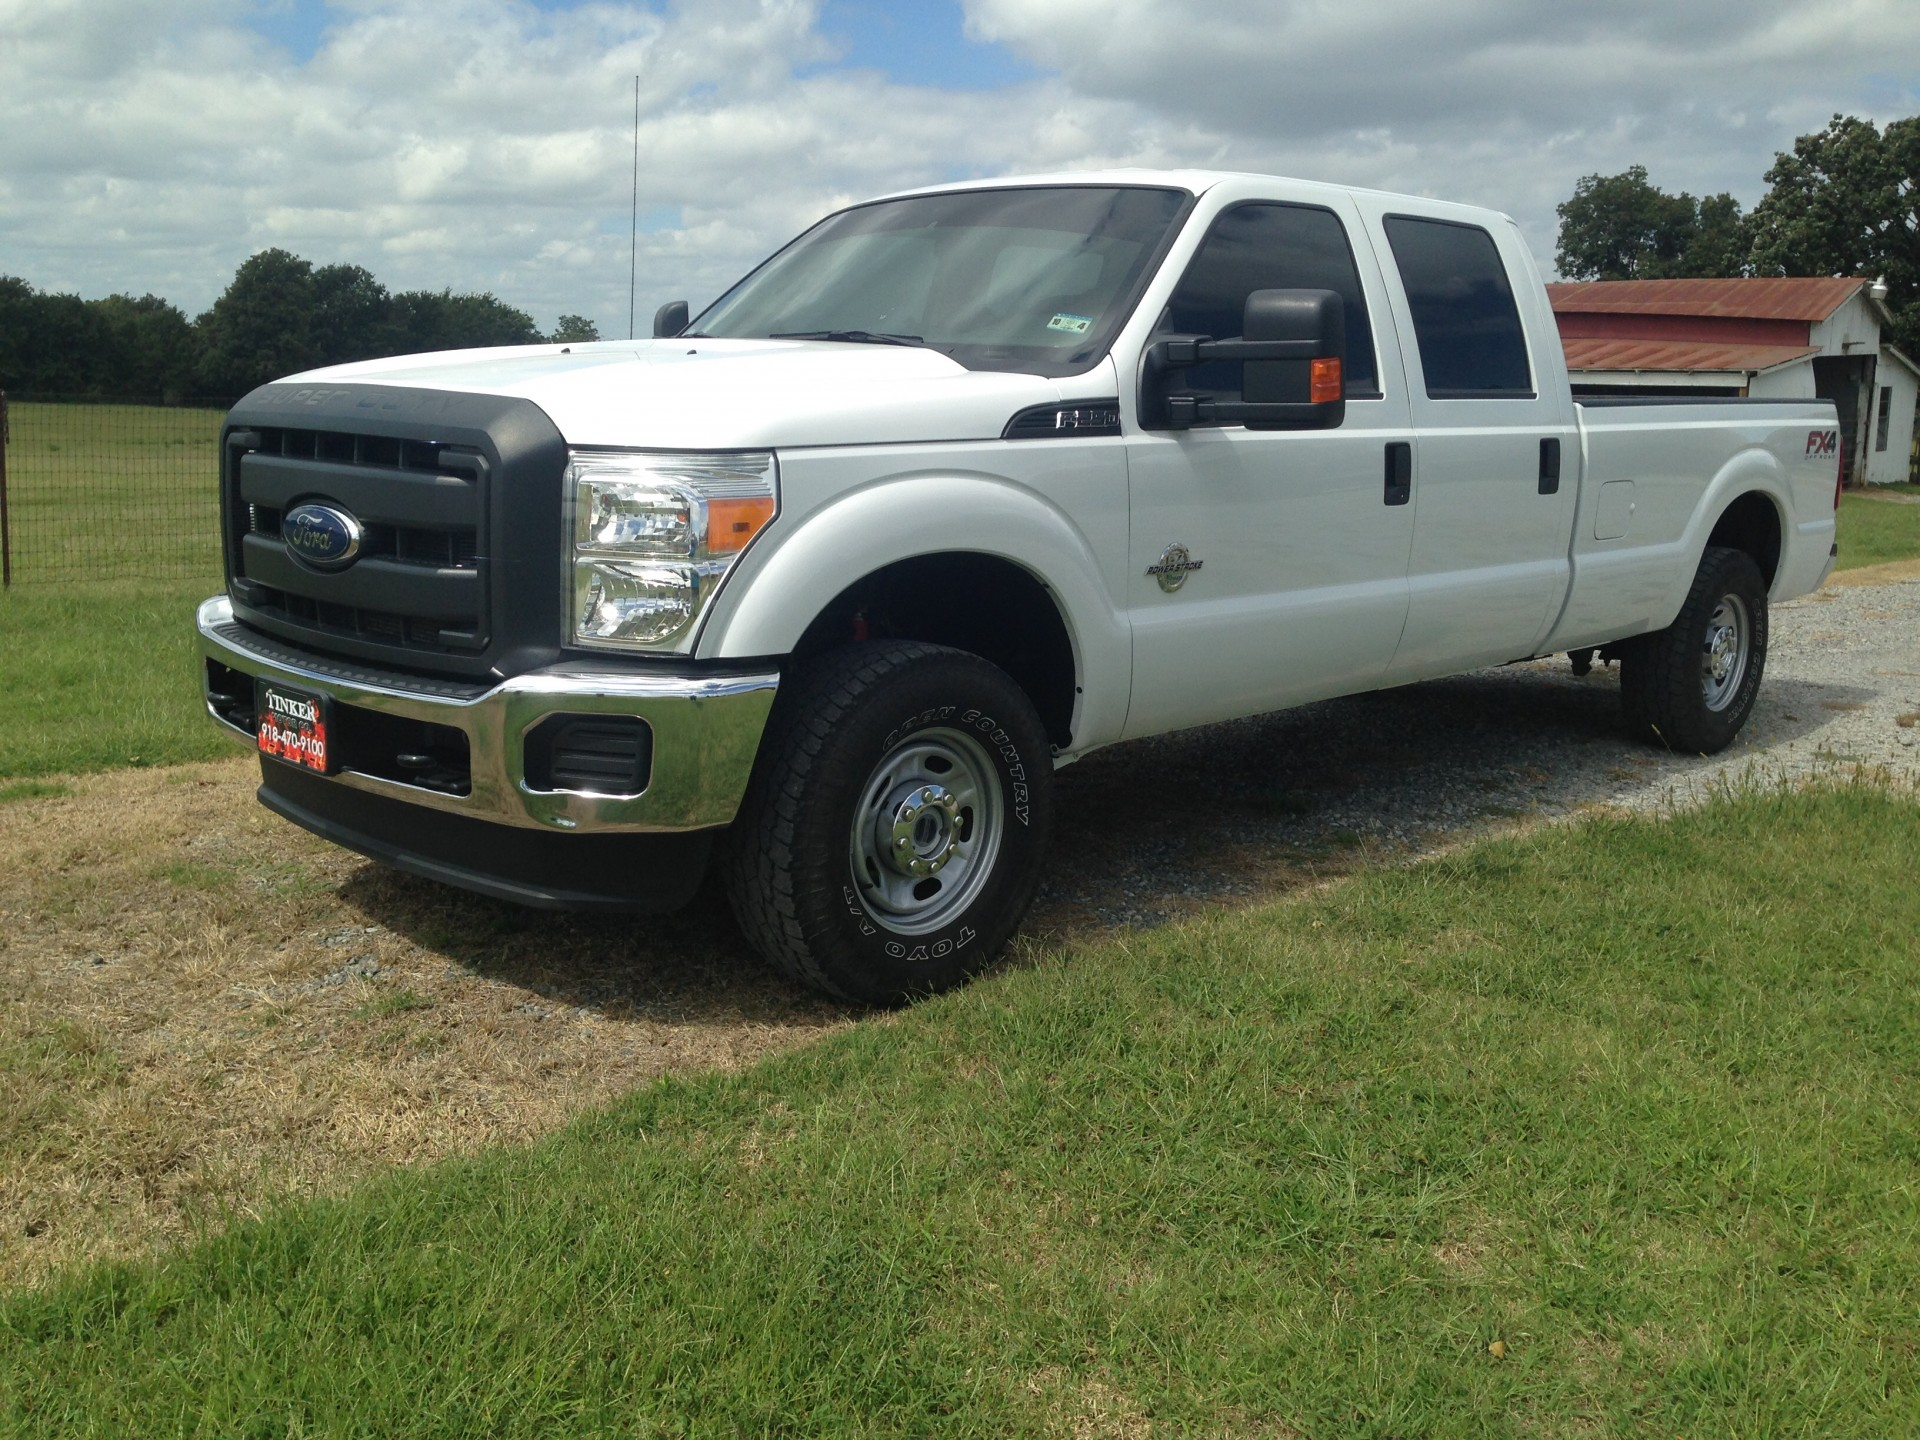 2014 ford f250 diesel fx4 crew cab lb stk 8475. Black Bedroom Furniture Sets. Home Design Ideas